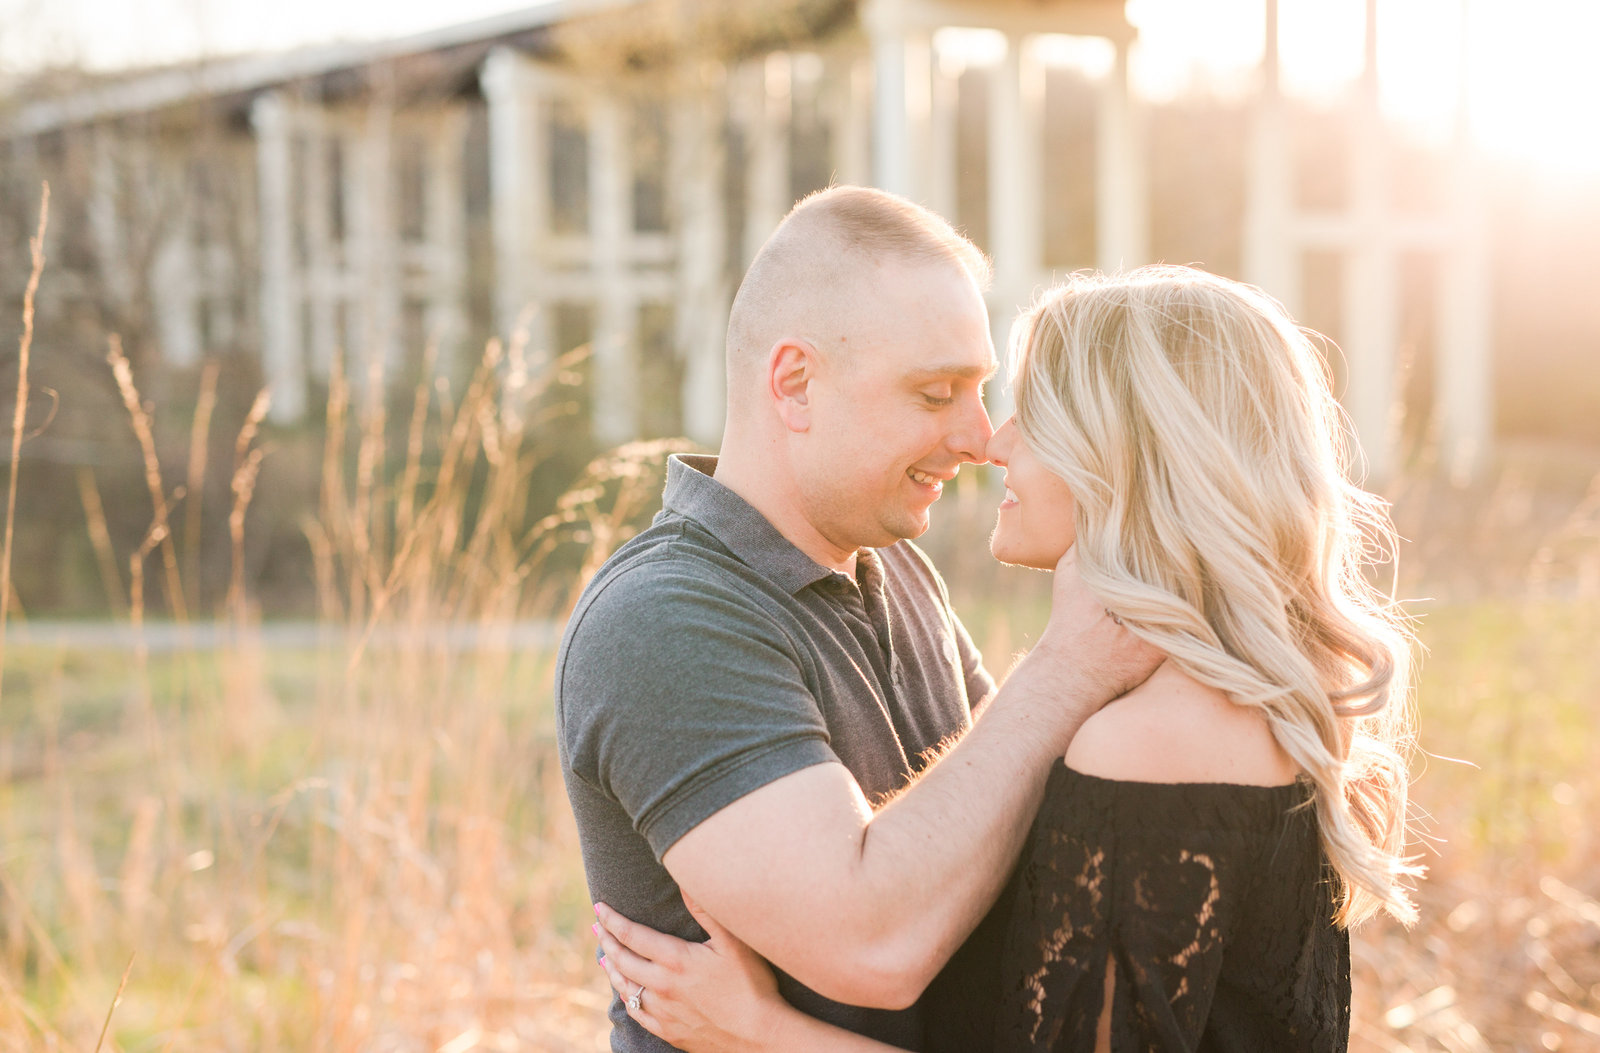 penisula-ohio-engagement-session-allison-ewing-photography-005-1